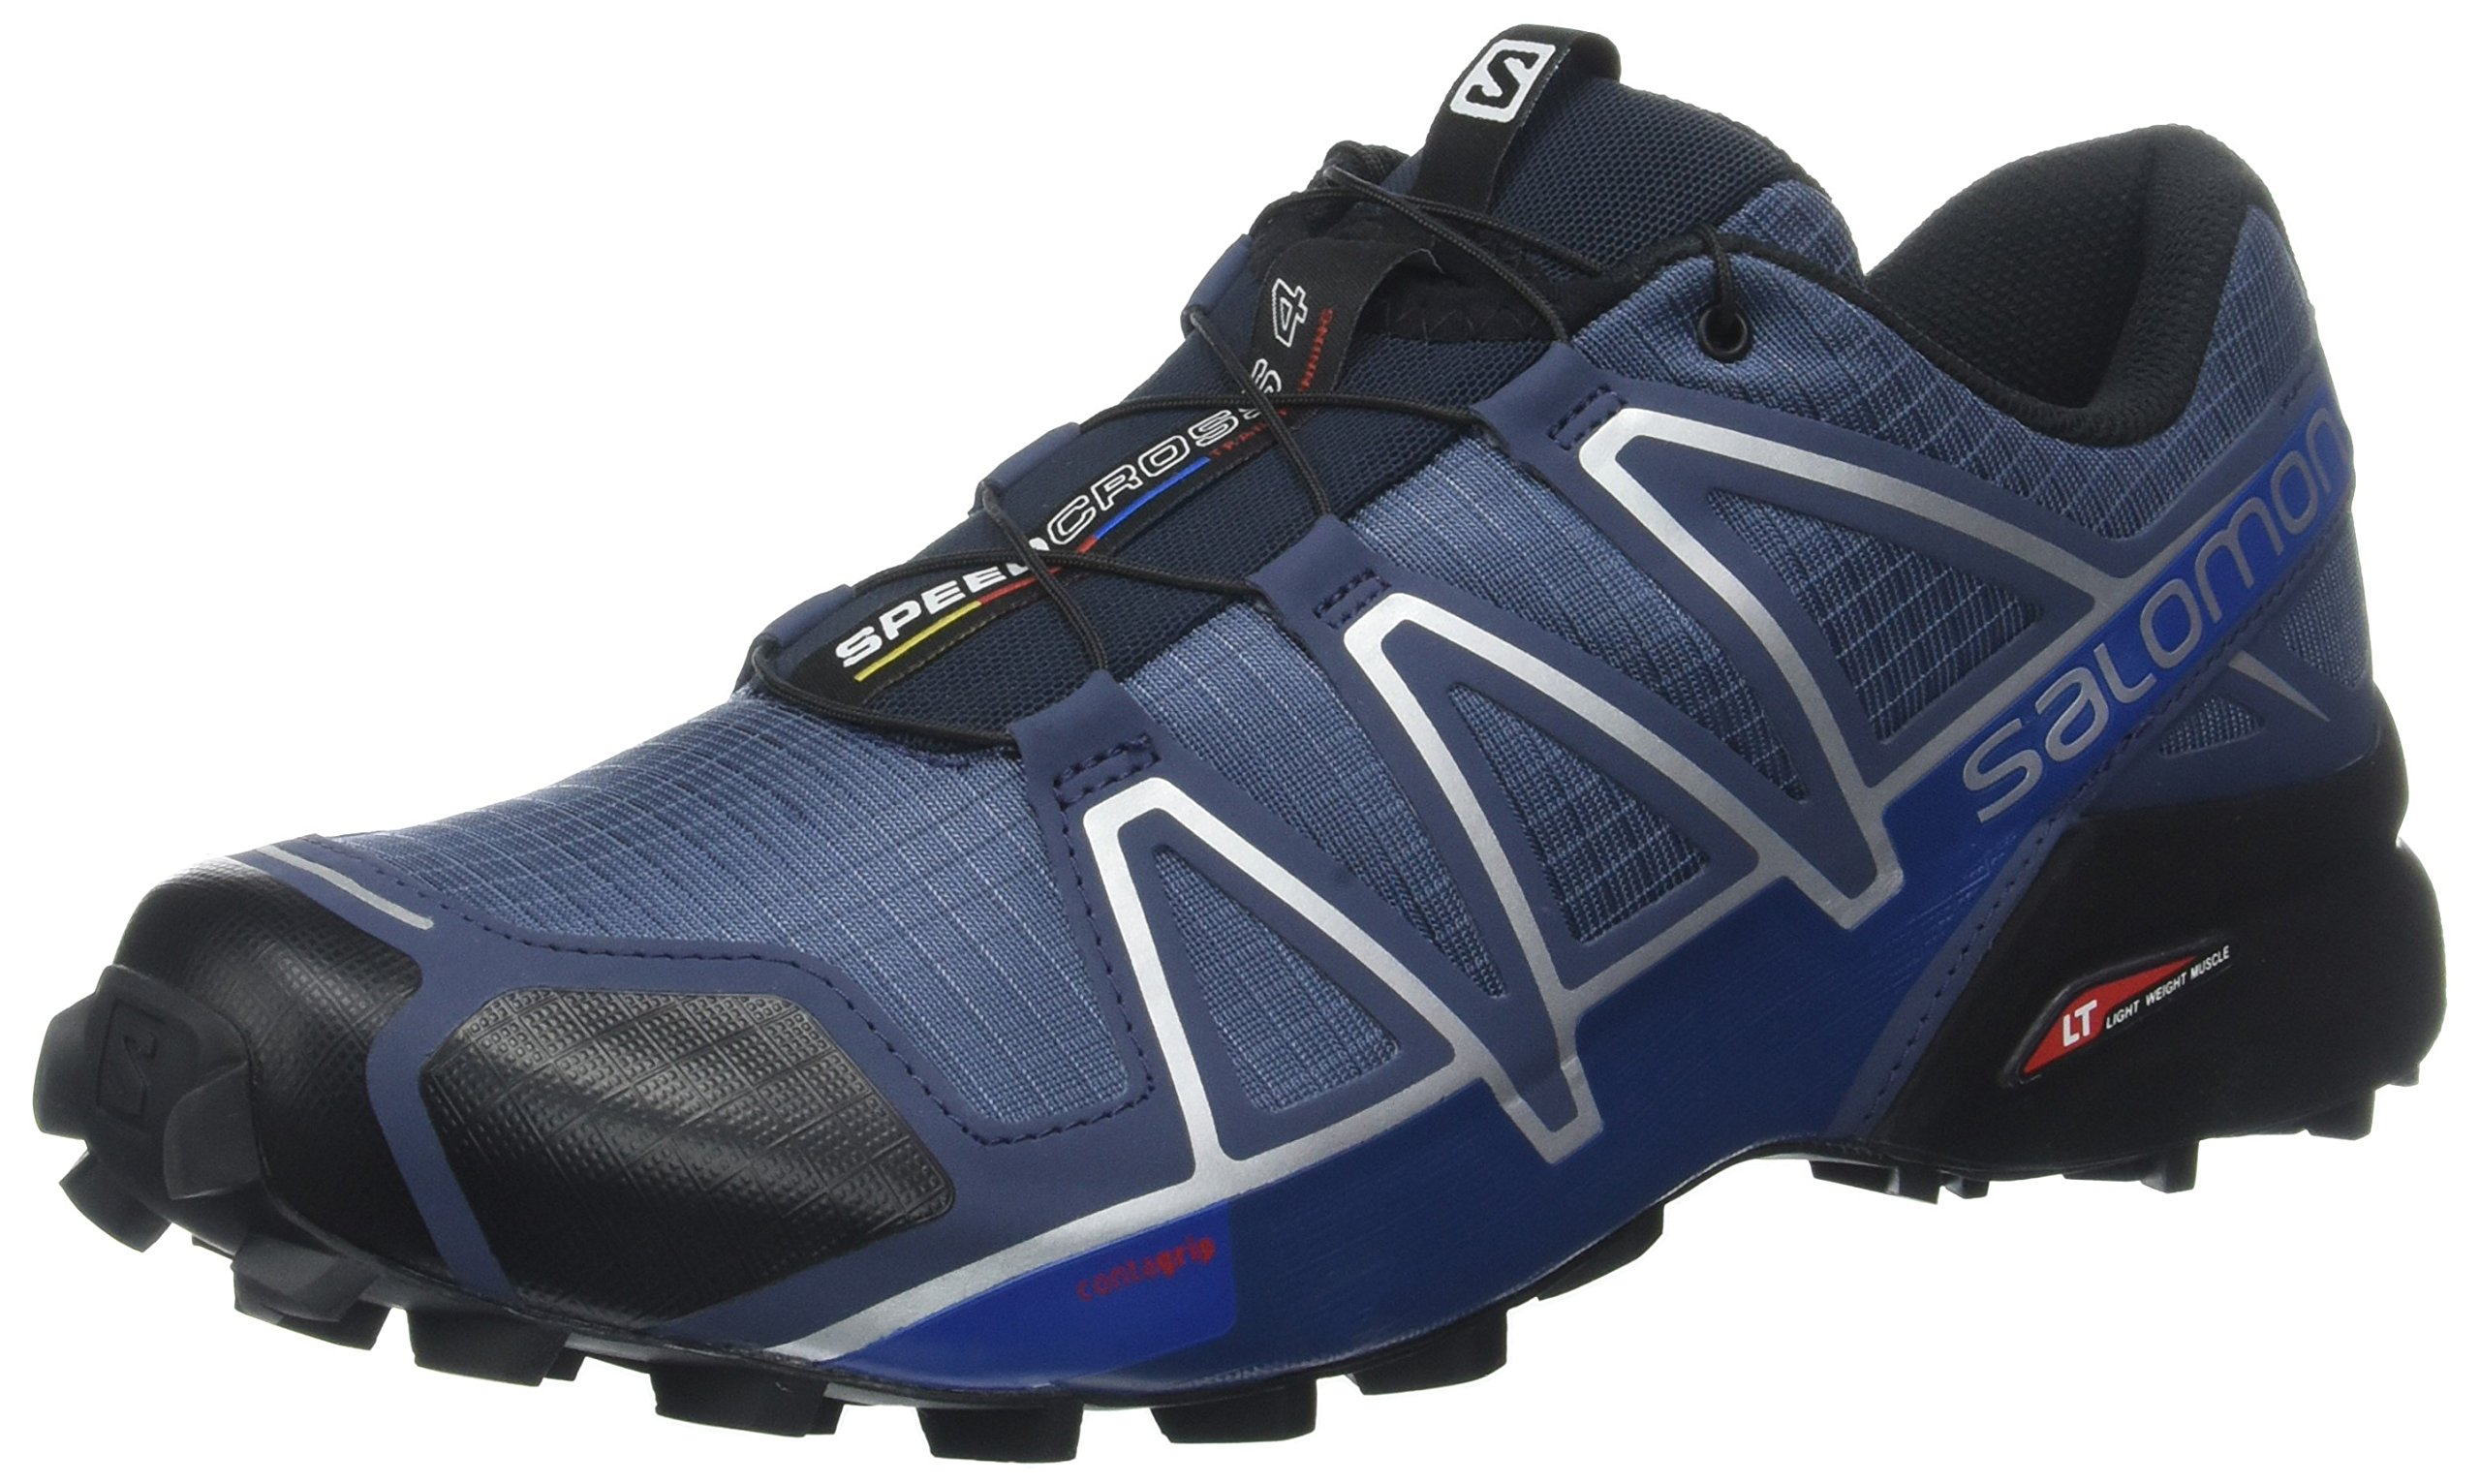 Salomon Men's Speedcross 4 Trail Runner, Slate Black/Blue Yonder, 11.5 D US